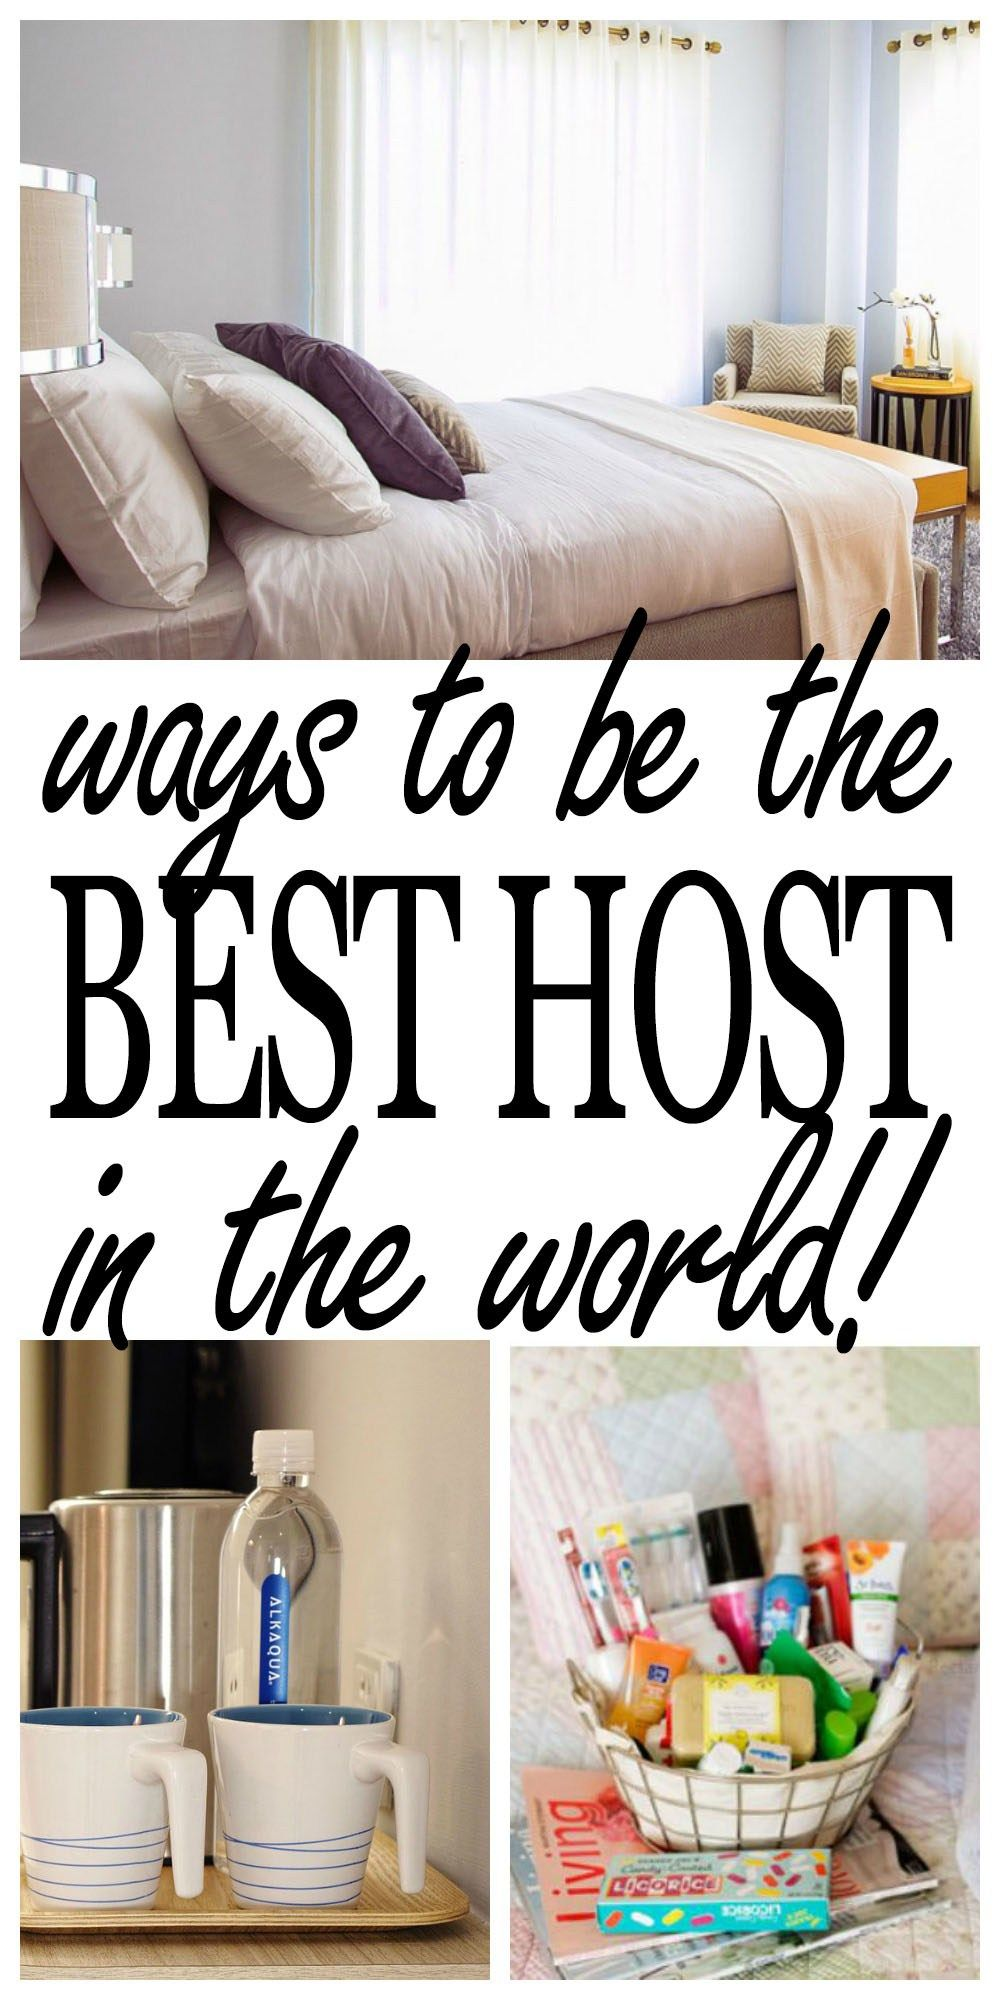 Hotel Guest Room Design: Be The Best Host In The World